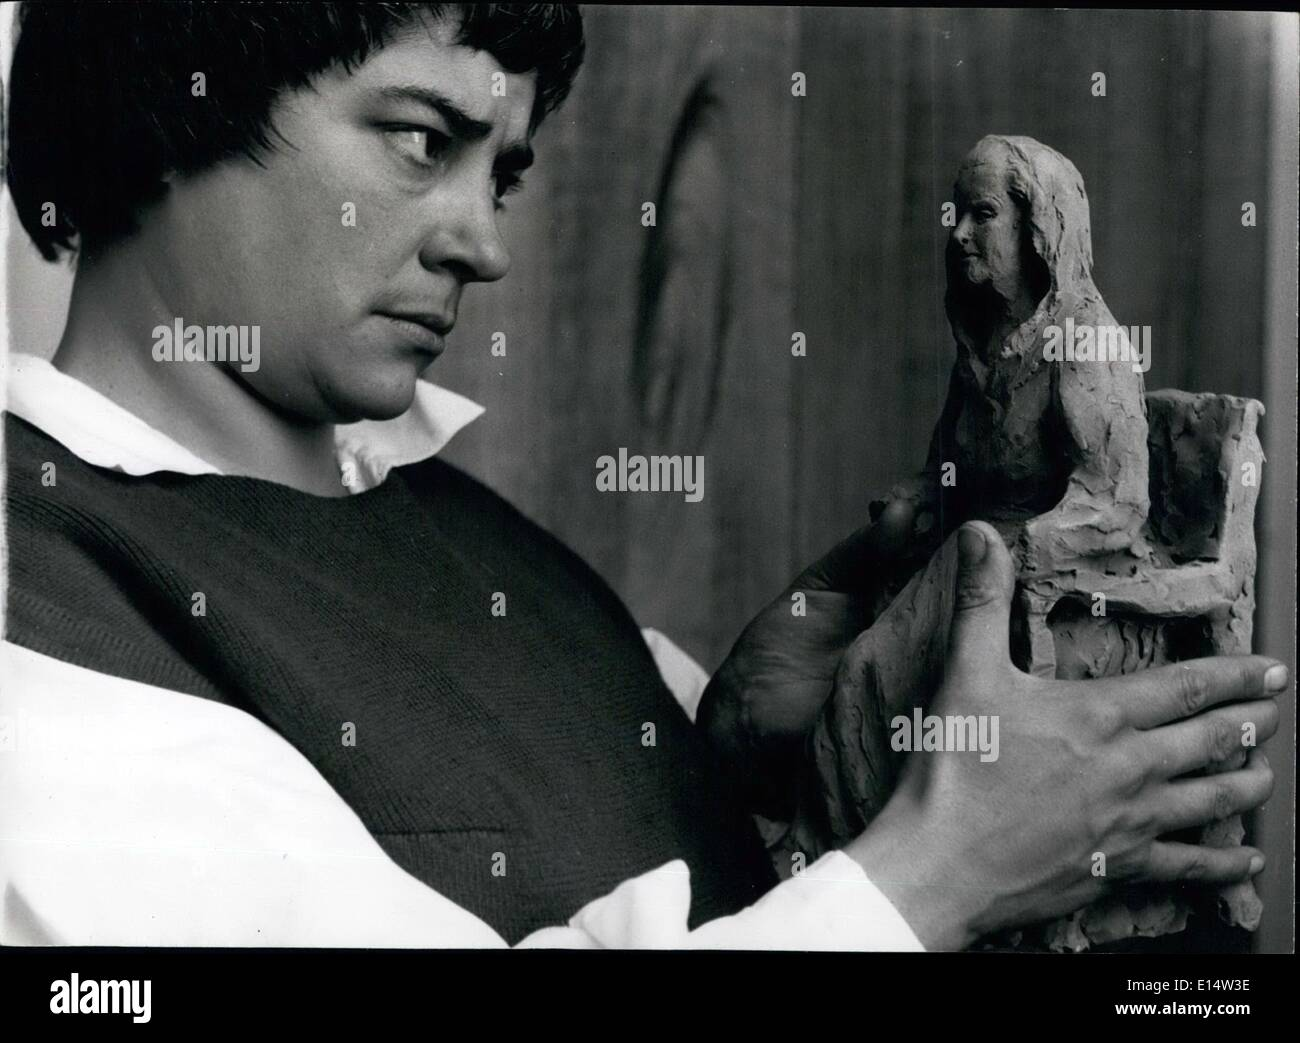 Apr. 18, 2012 - Creator and Creation : Miss Henriquez looks Quizzically at her sculpture of Mrs. Augustus John, wife of the artist. - Stock Image